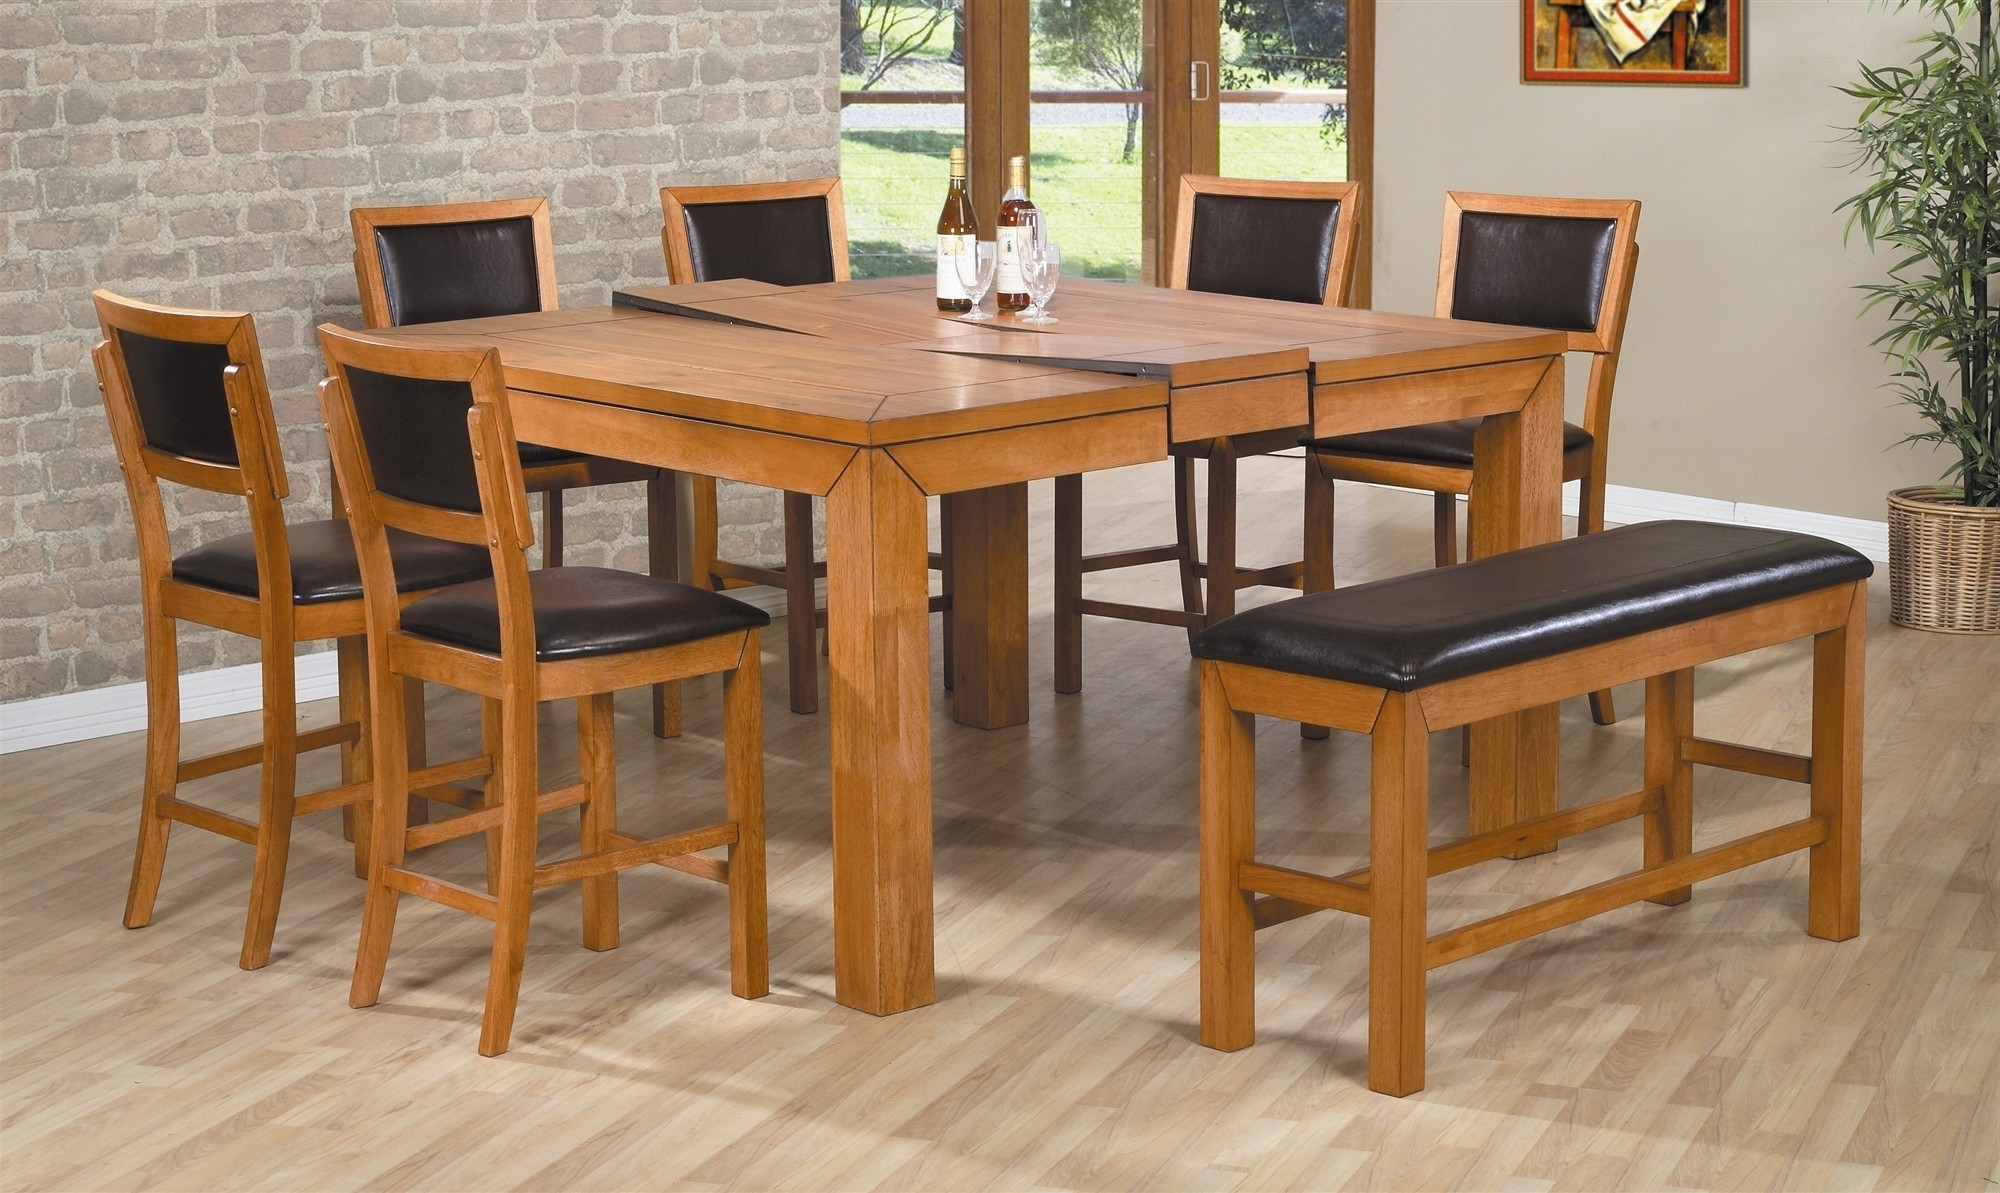 Small Extendable Dining Table Sets With Regard To Most Up To Date Extendable Dining Tables For Small Spaces Beautiful 15 New White (View 3 of 25)